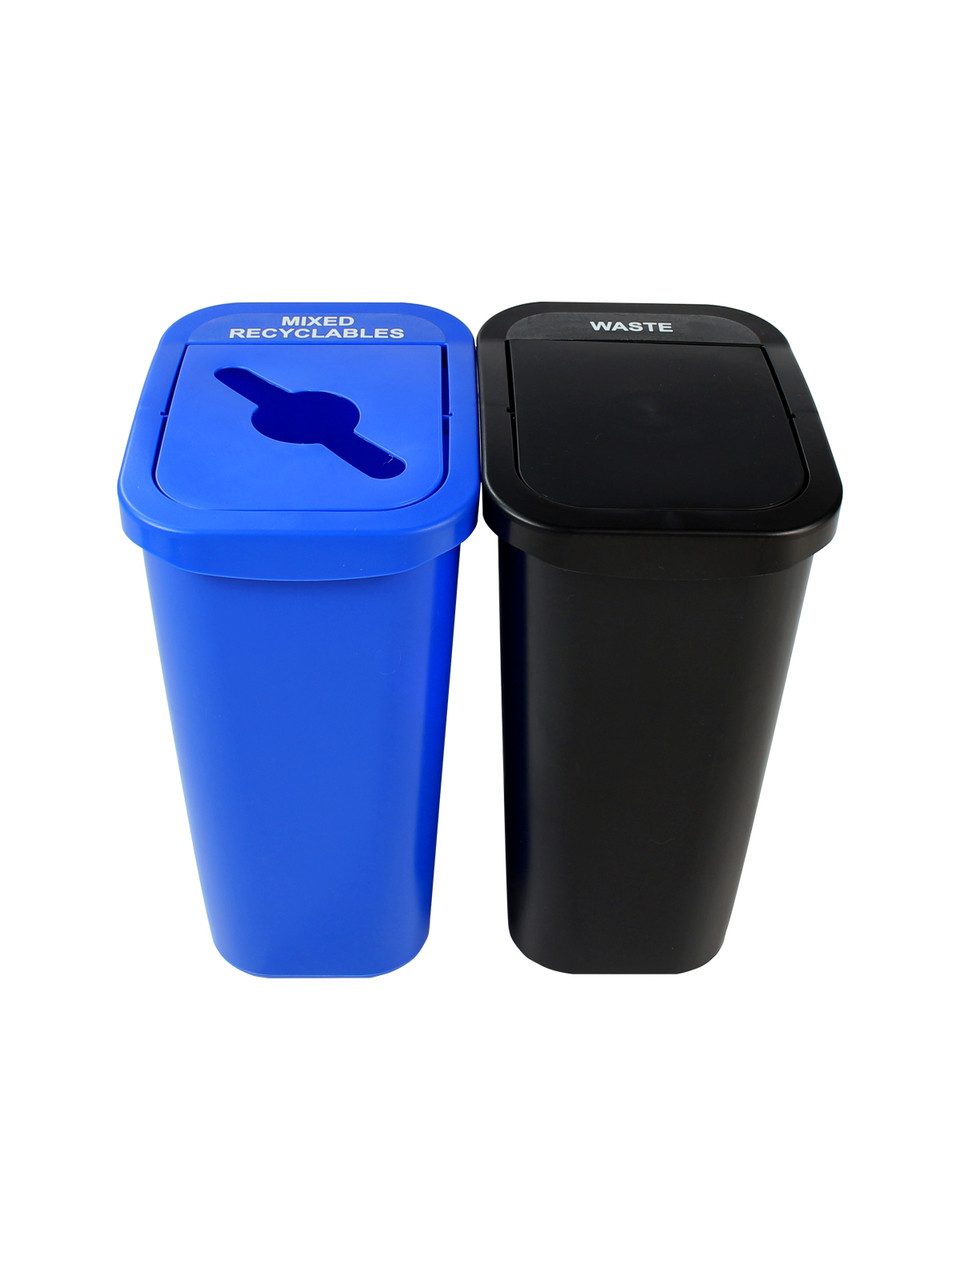 20 Gallon Billi Box Double Trash Can Recycle Bin Combo 8102021-24 (Mixed, Swing Openings)